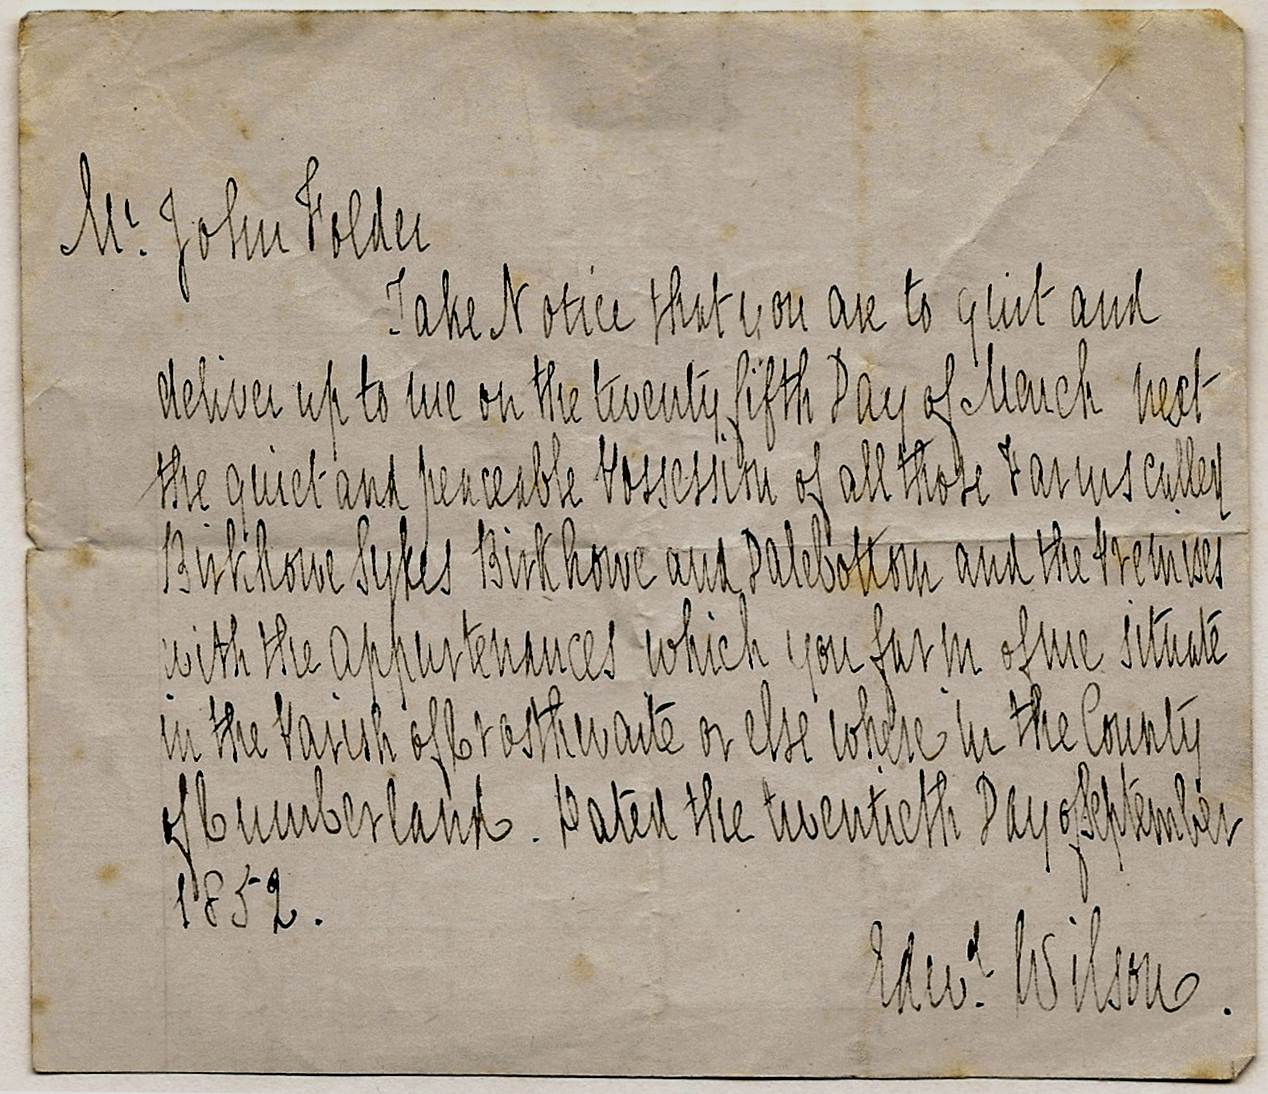 Letter from Edward Wilson to John Folder